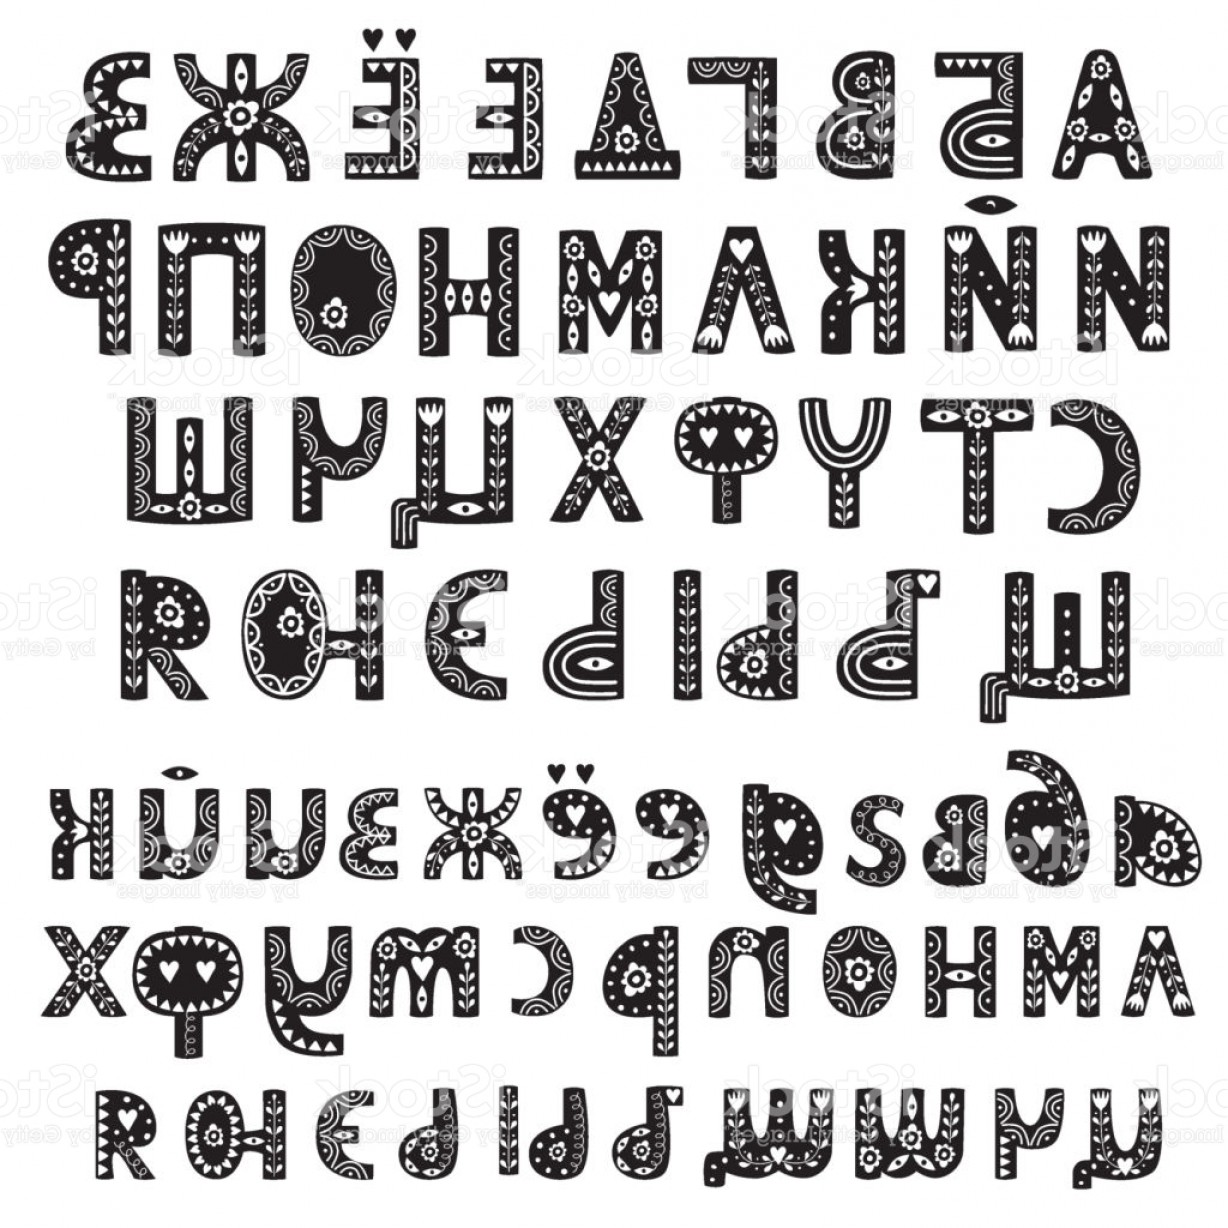 Decorative Font Vector Illustration: Decorative Alphabet In Scandinavian Style Hygge Cyrillic Font Gm